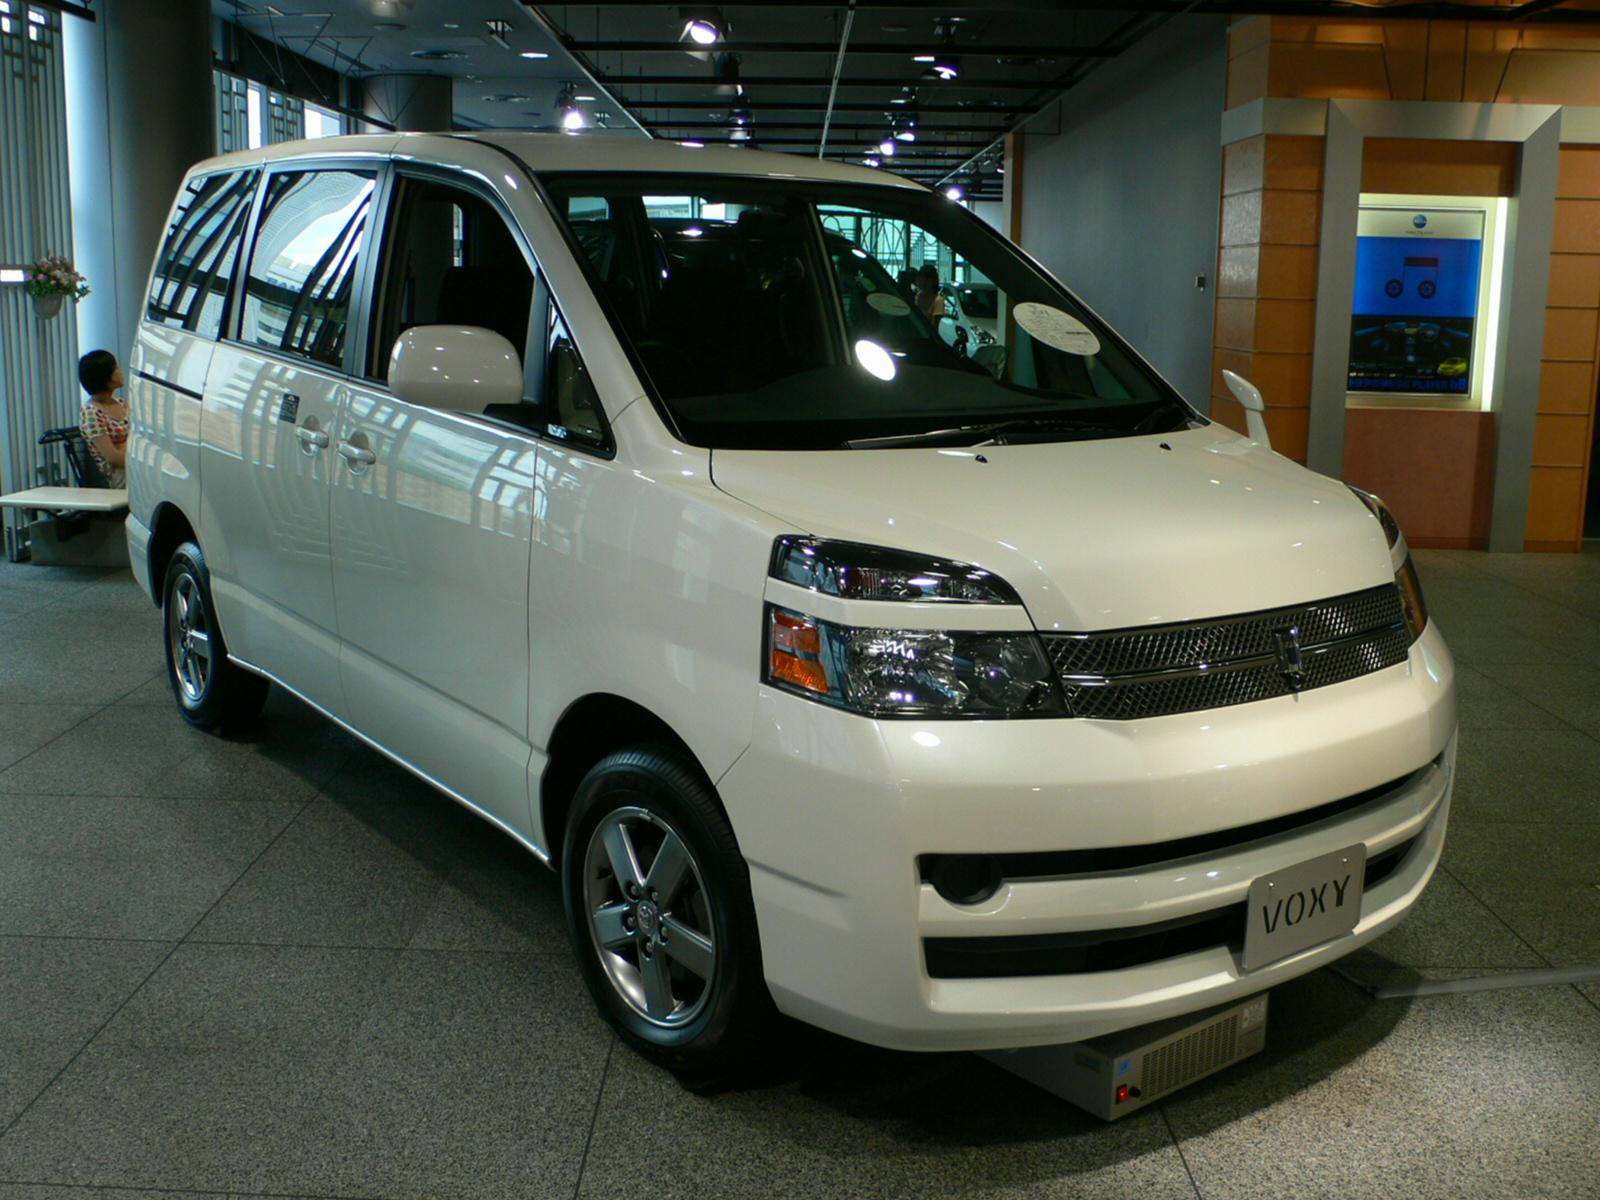 Front View of the Voxy